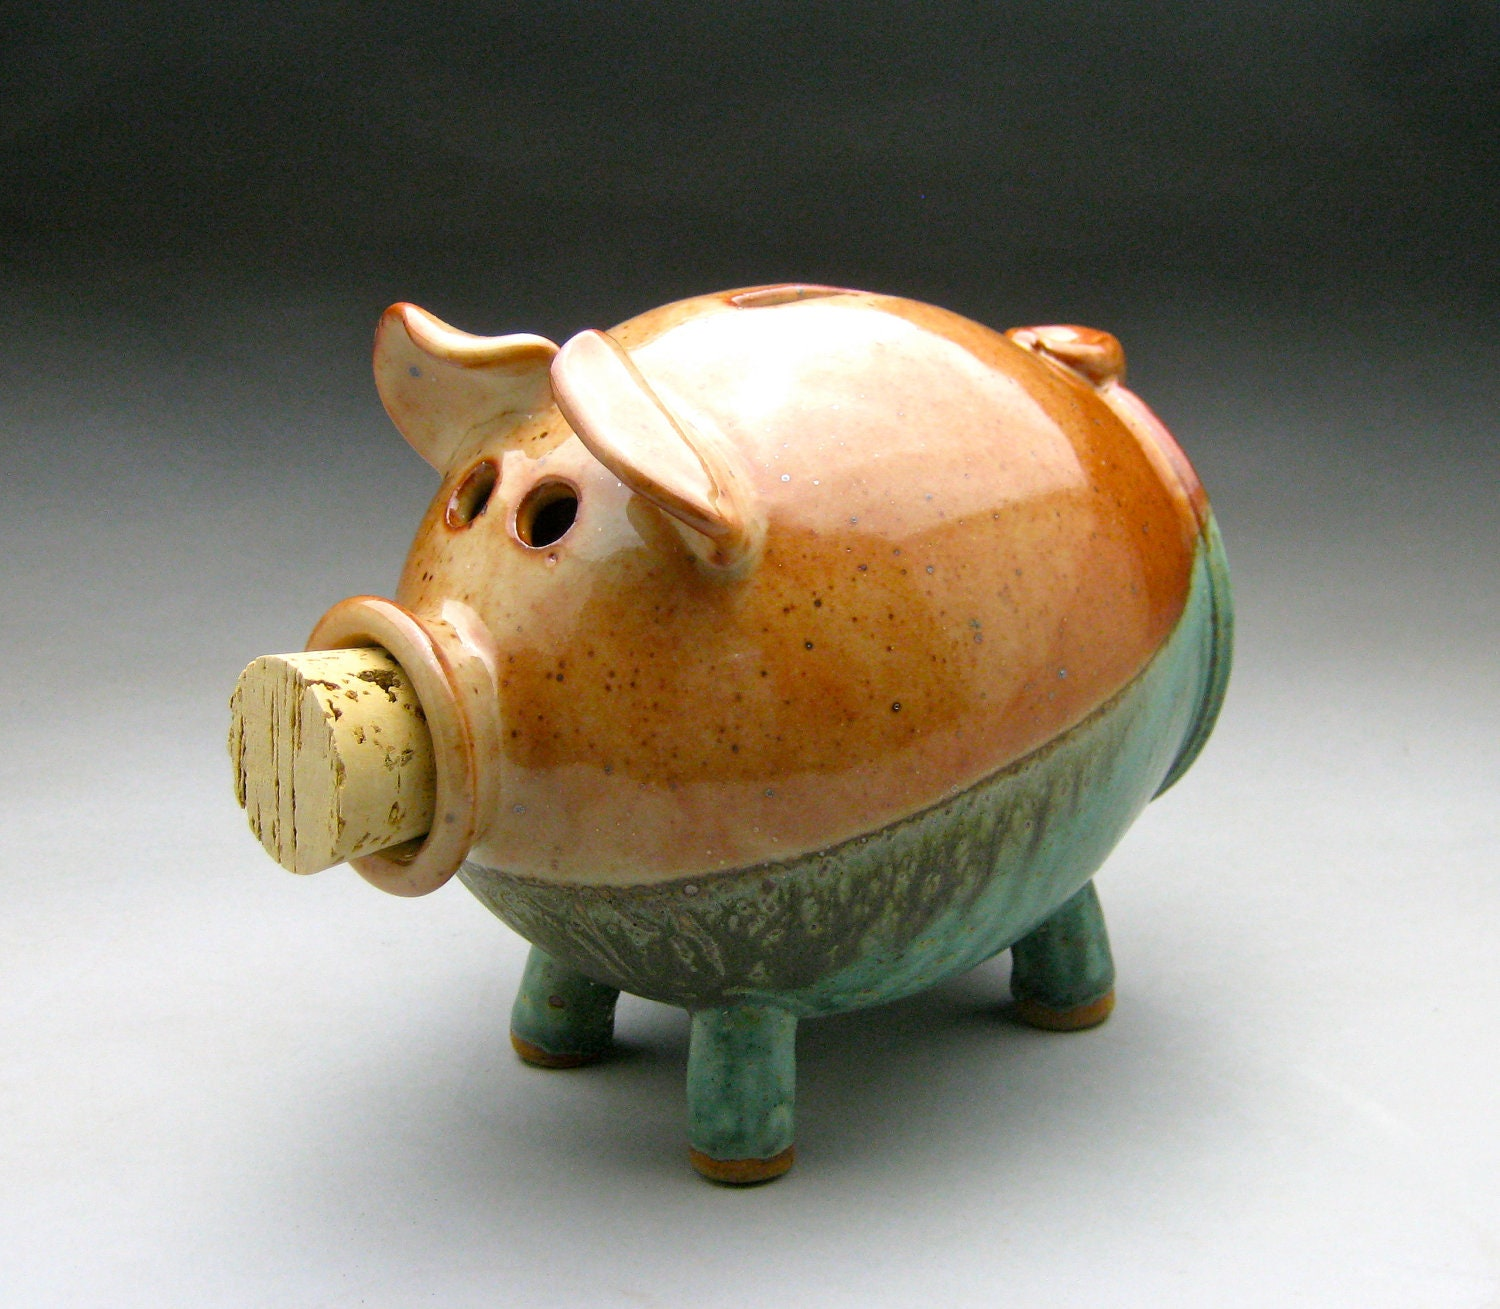 Copper And Turquoise Ceramic Piggy Bank